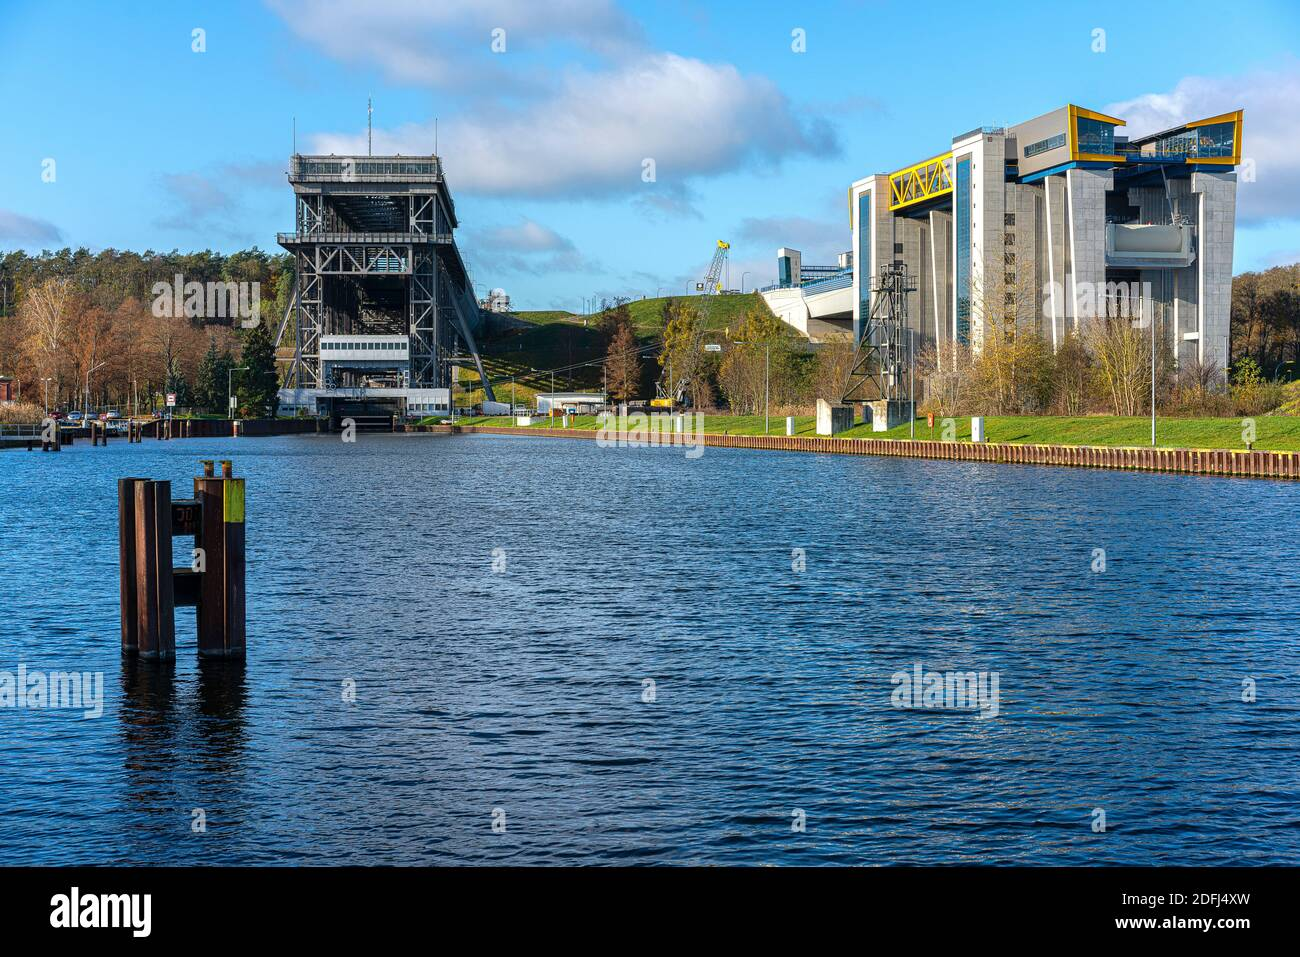 Niederfinow Boat Lift Stock Photo